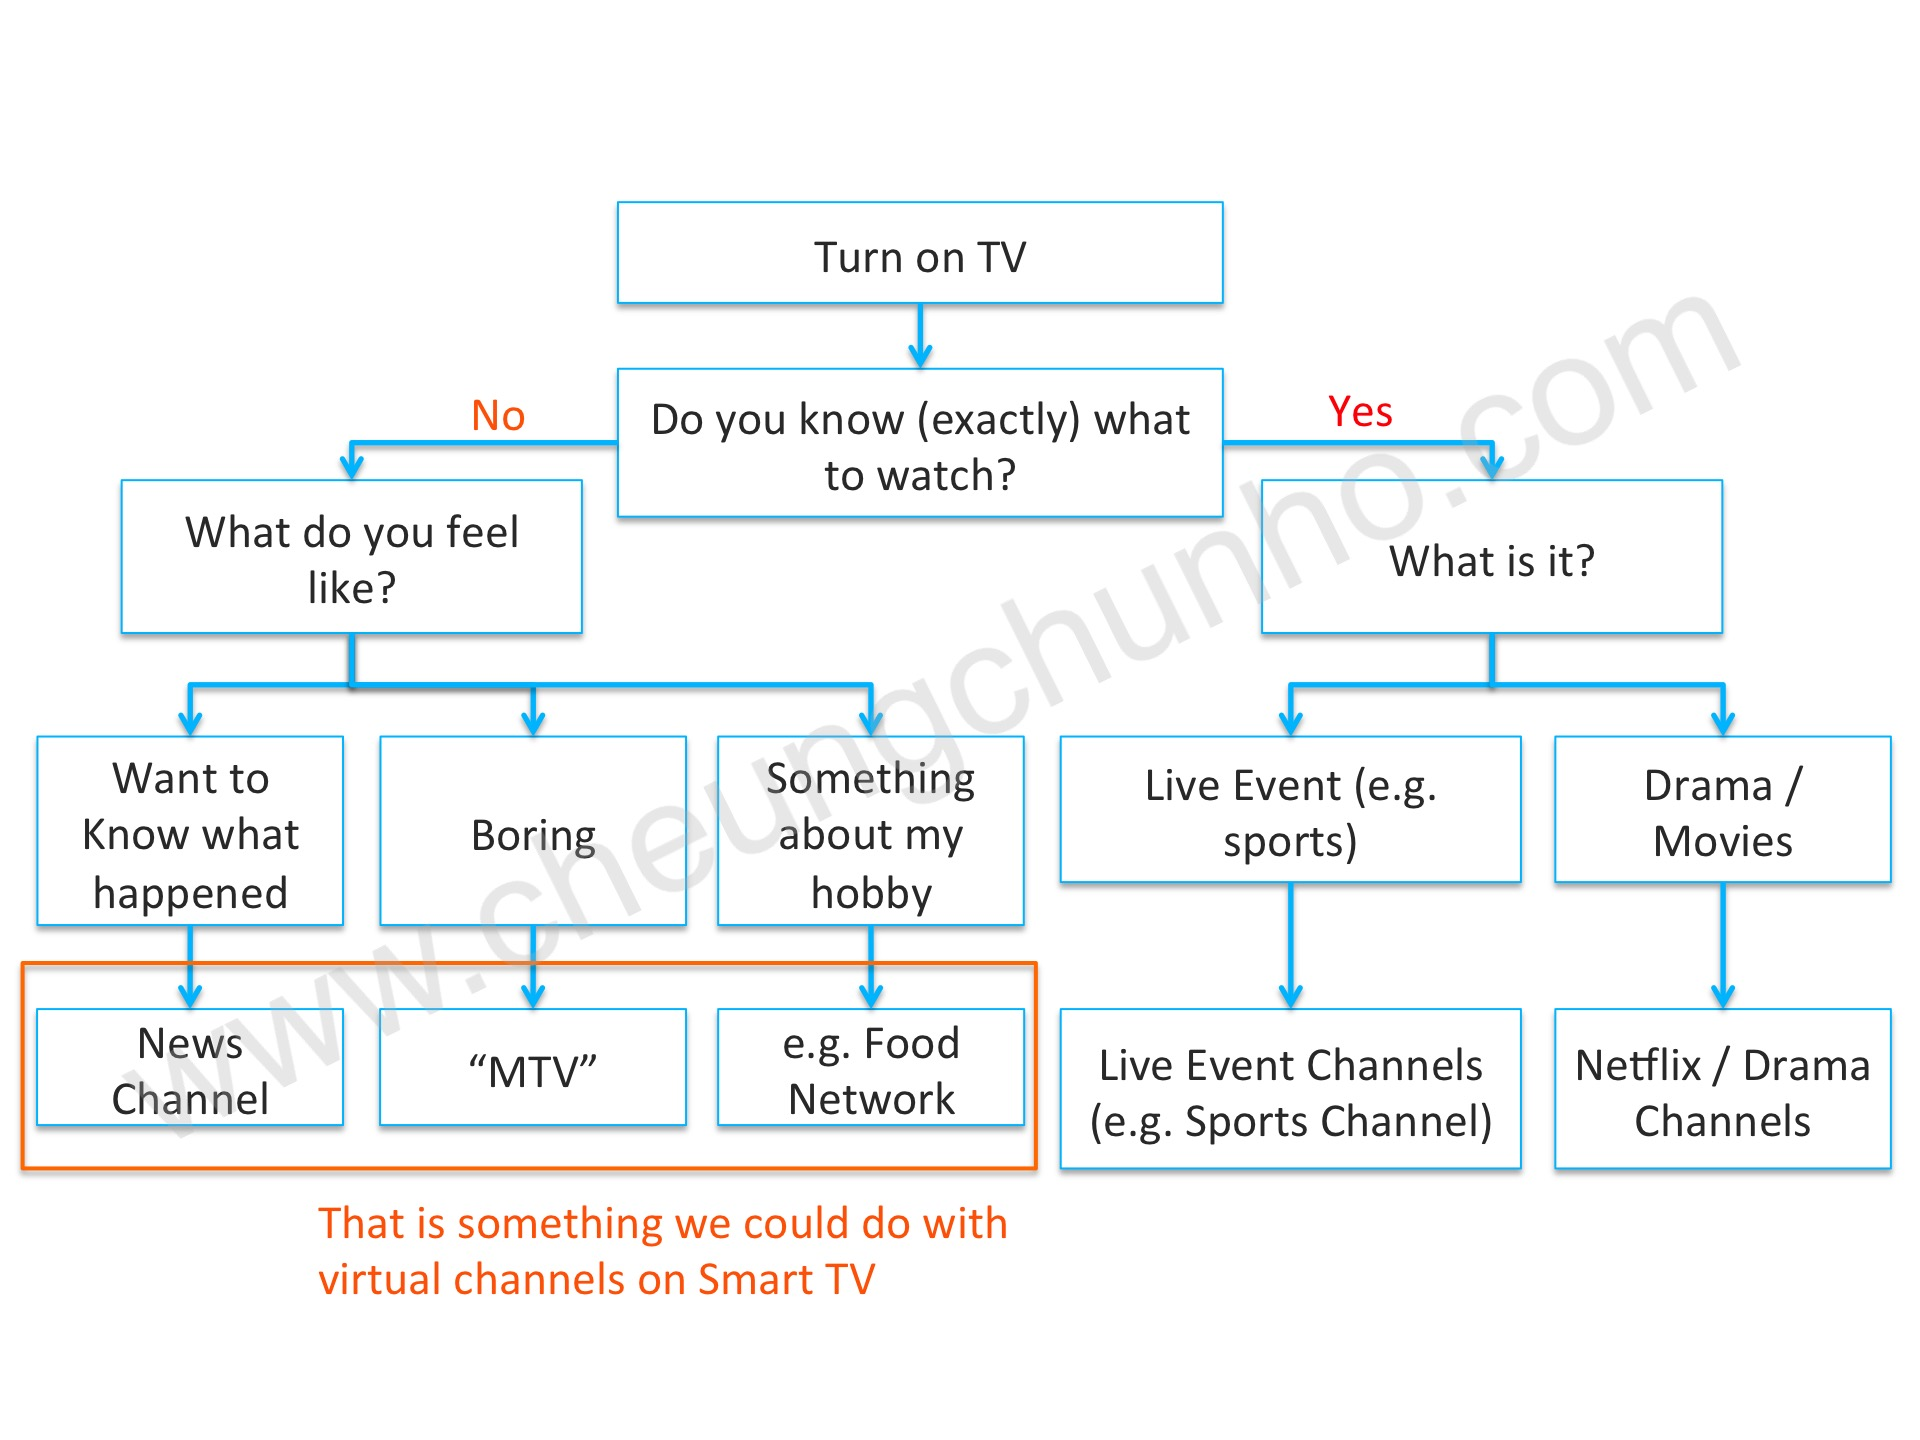 Next Disruption: Curated Online Videos on Smart TVs – Part 2